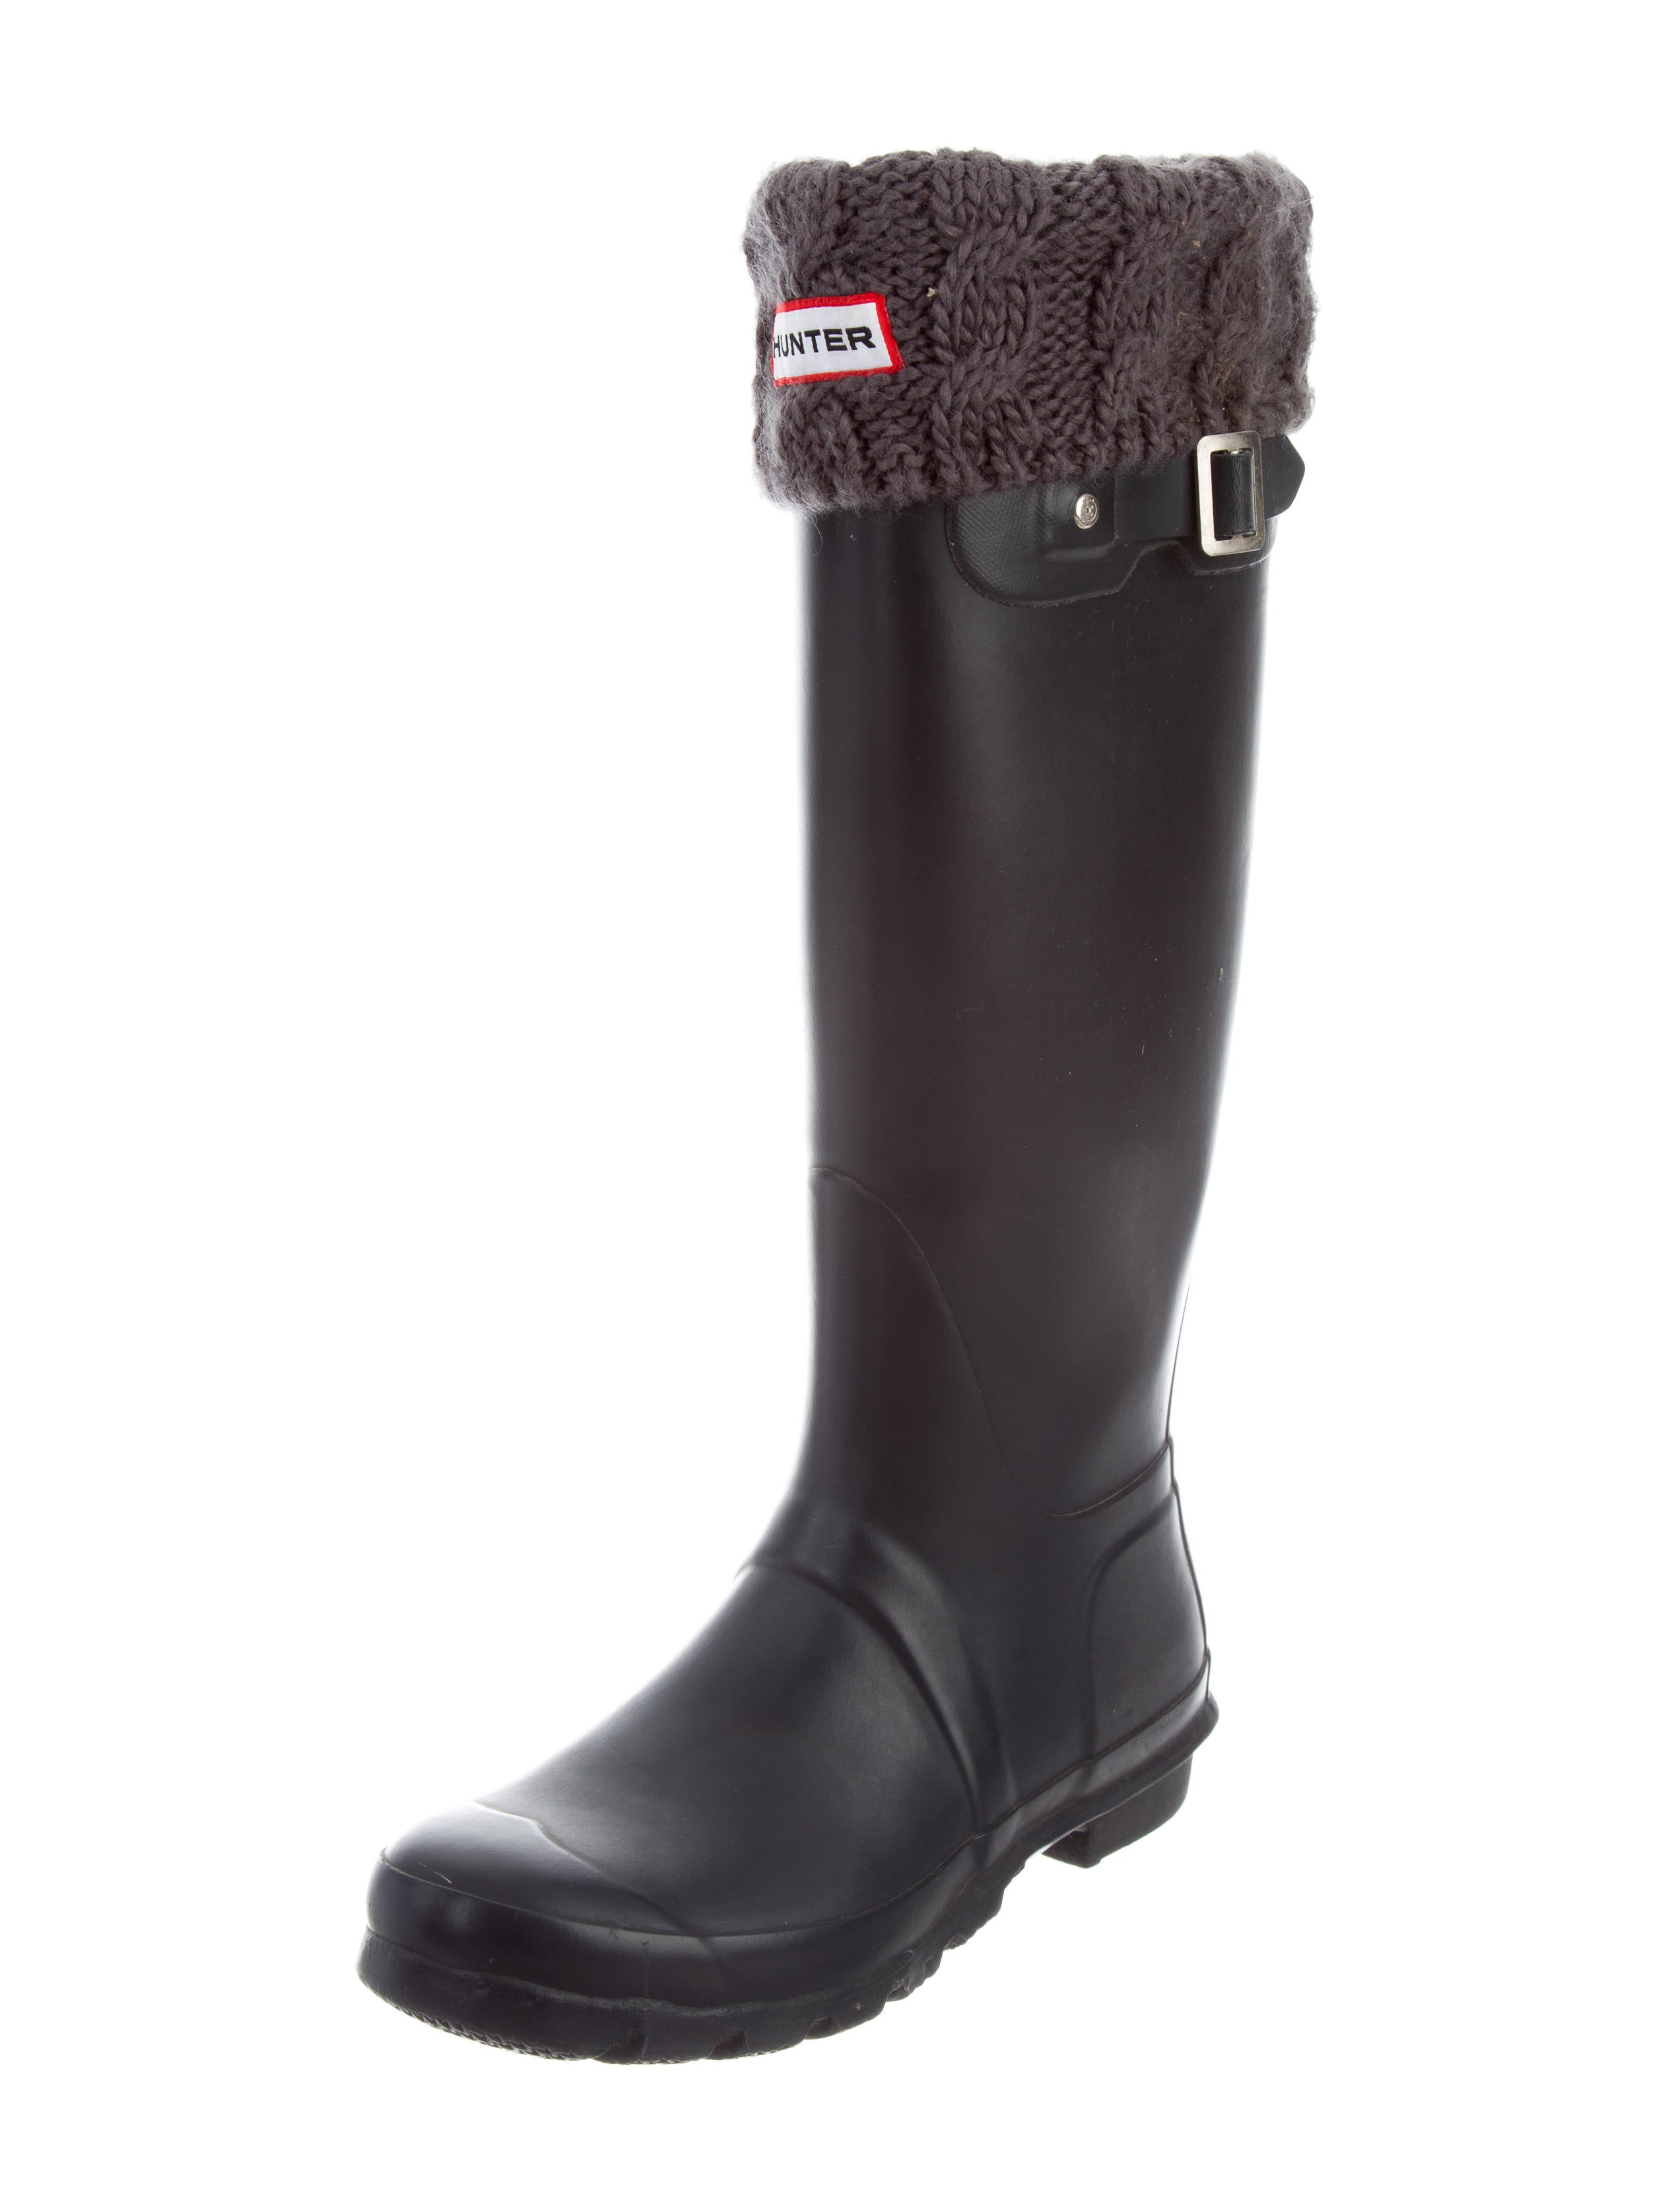 rubber boots shoes wh822094 the realreal